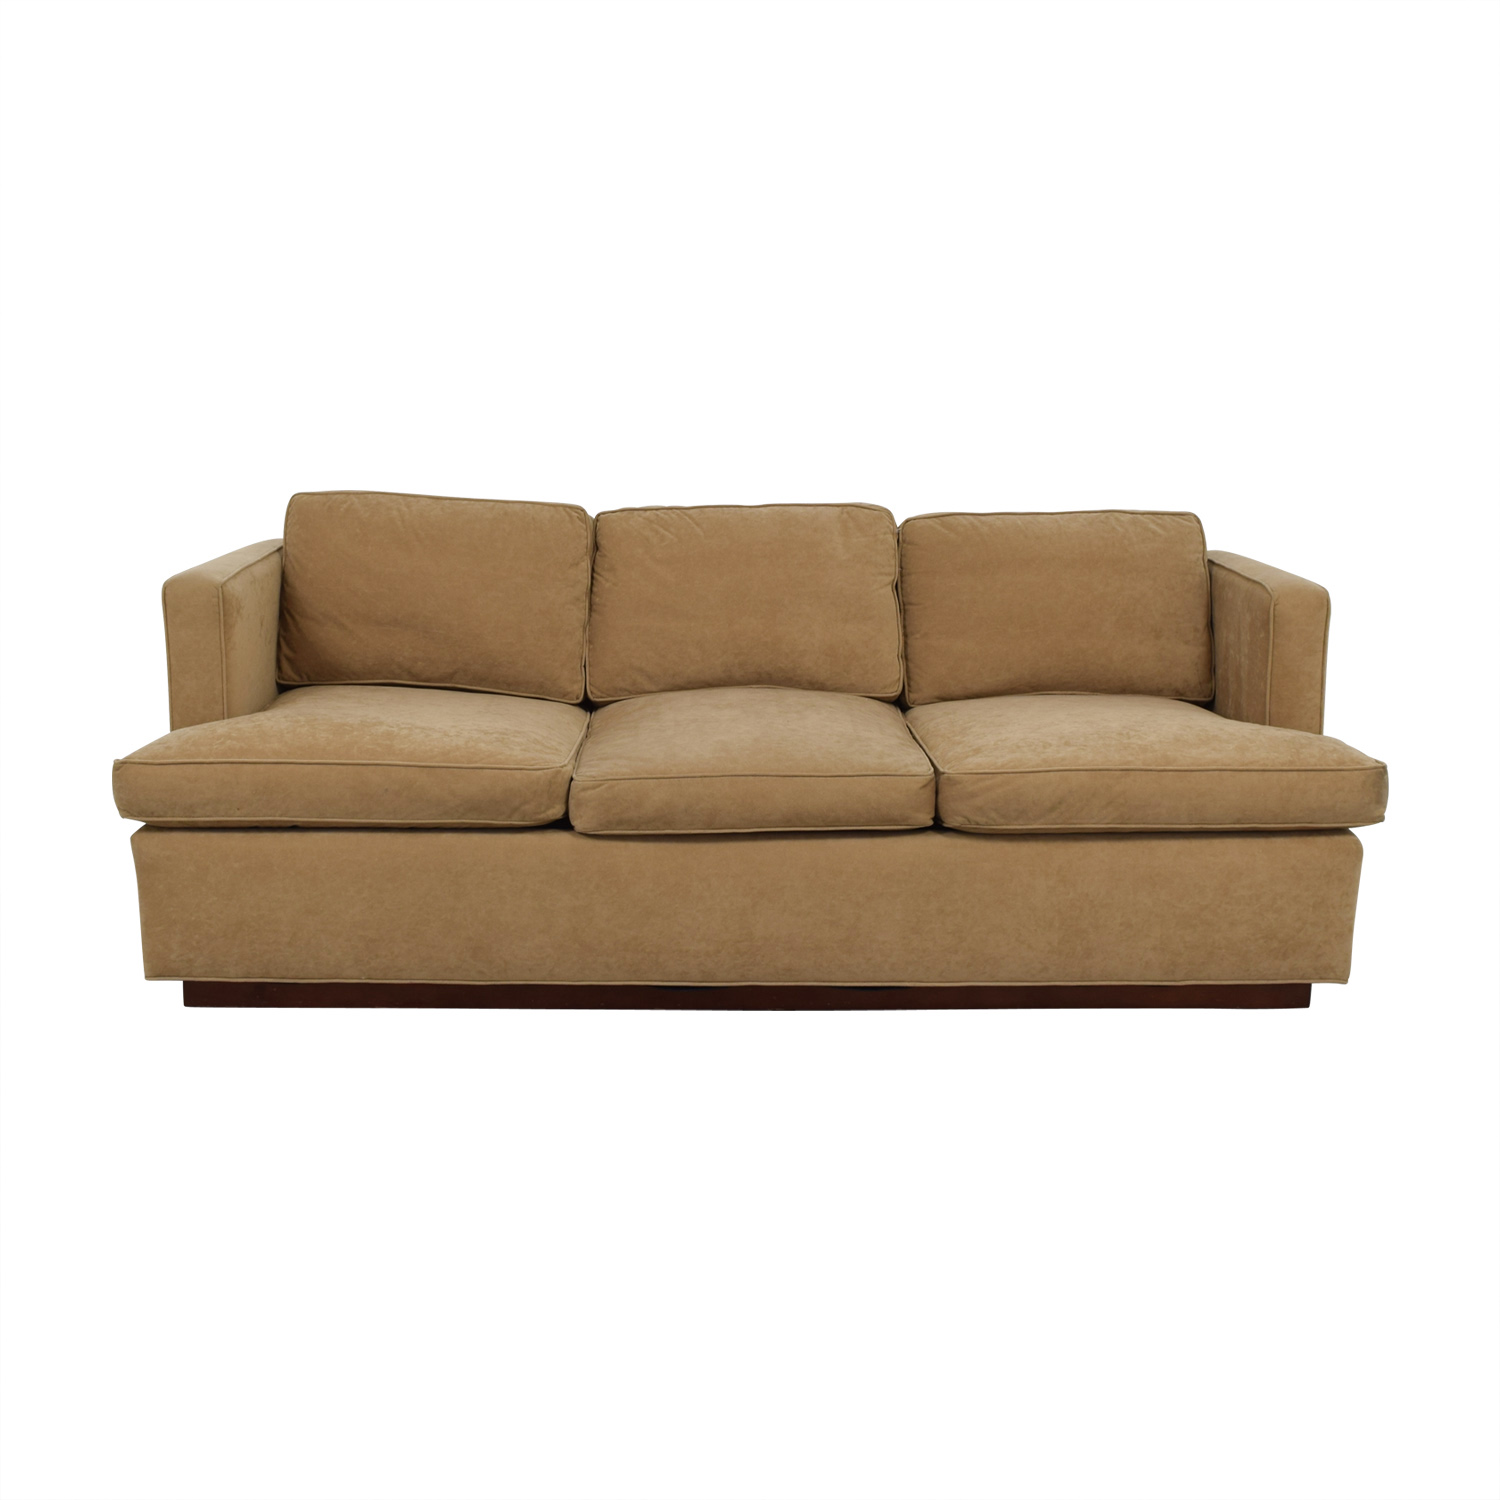 Beige Three-Cushion Sofa used